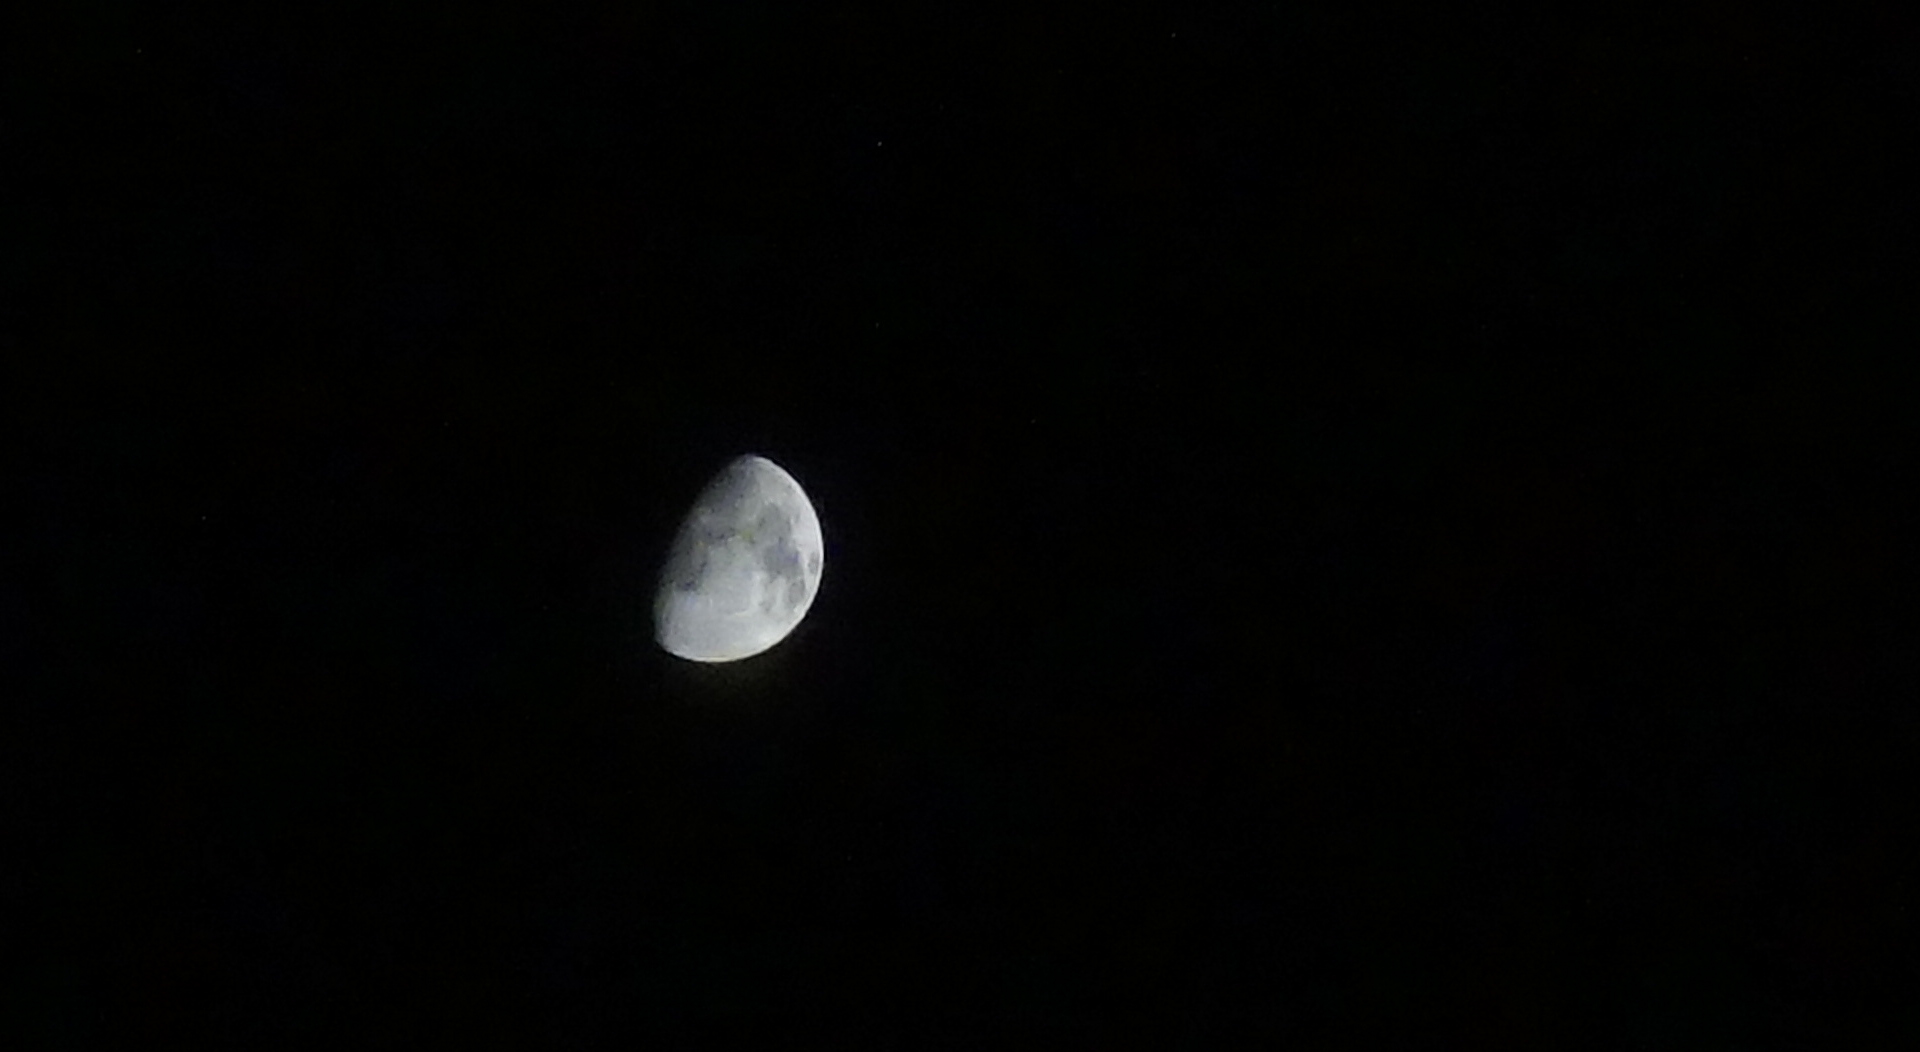 First moon photo cropped 8-7-2014